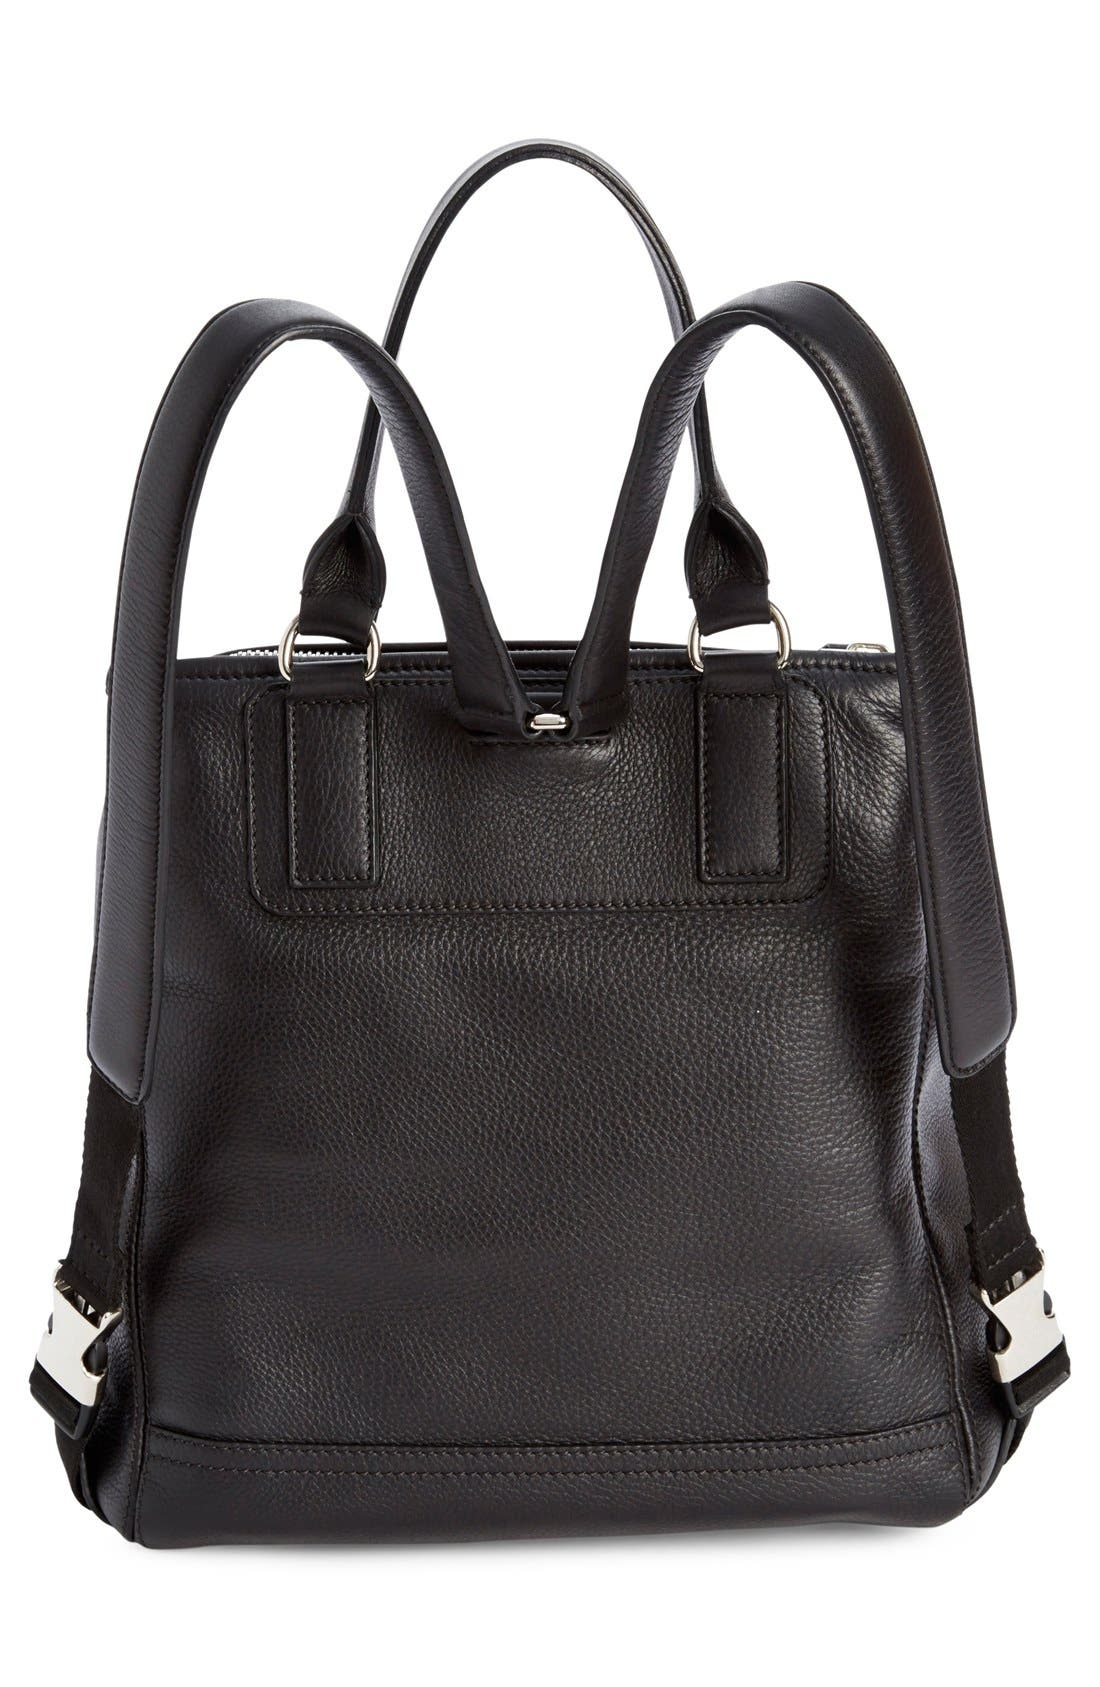 'Pandora' Waxy Leather Backpack,                             Alternate thumbnail 6, color,                             001